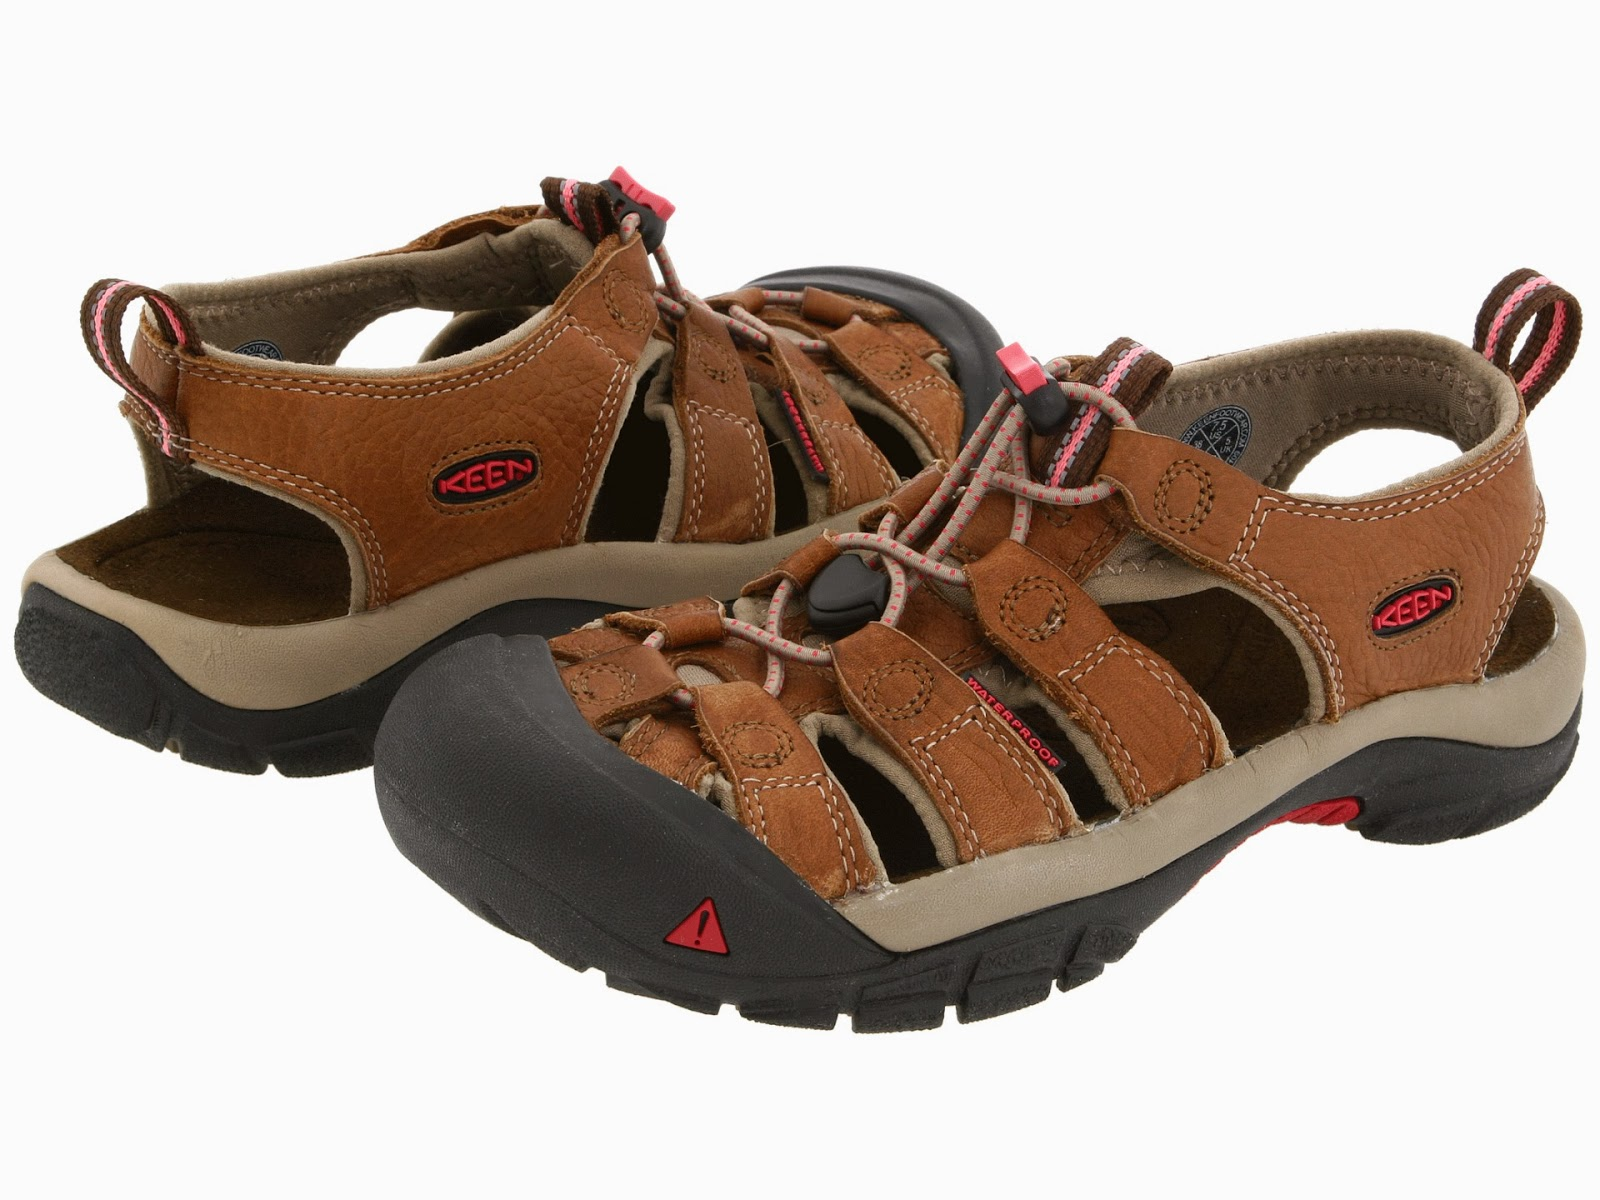 Womens sandals with arch support - For Stream Crossings Short Hikes And Driving To And From Hikes I Own A Pair Of Keen Newport Sandals They Are Waterproof Have Good Tread Arch Support